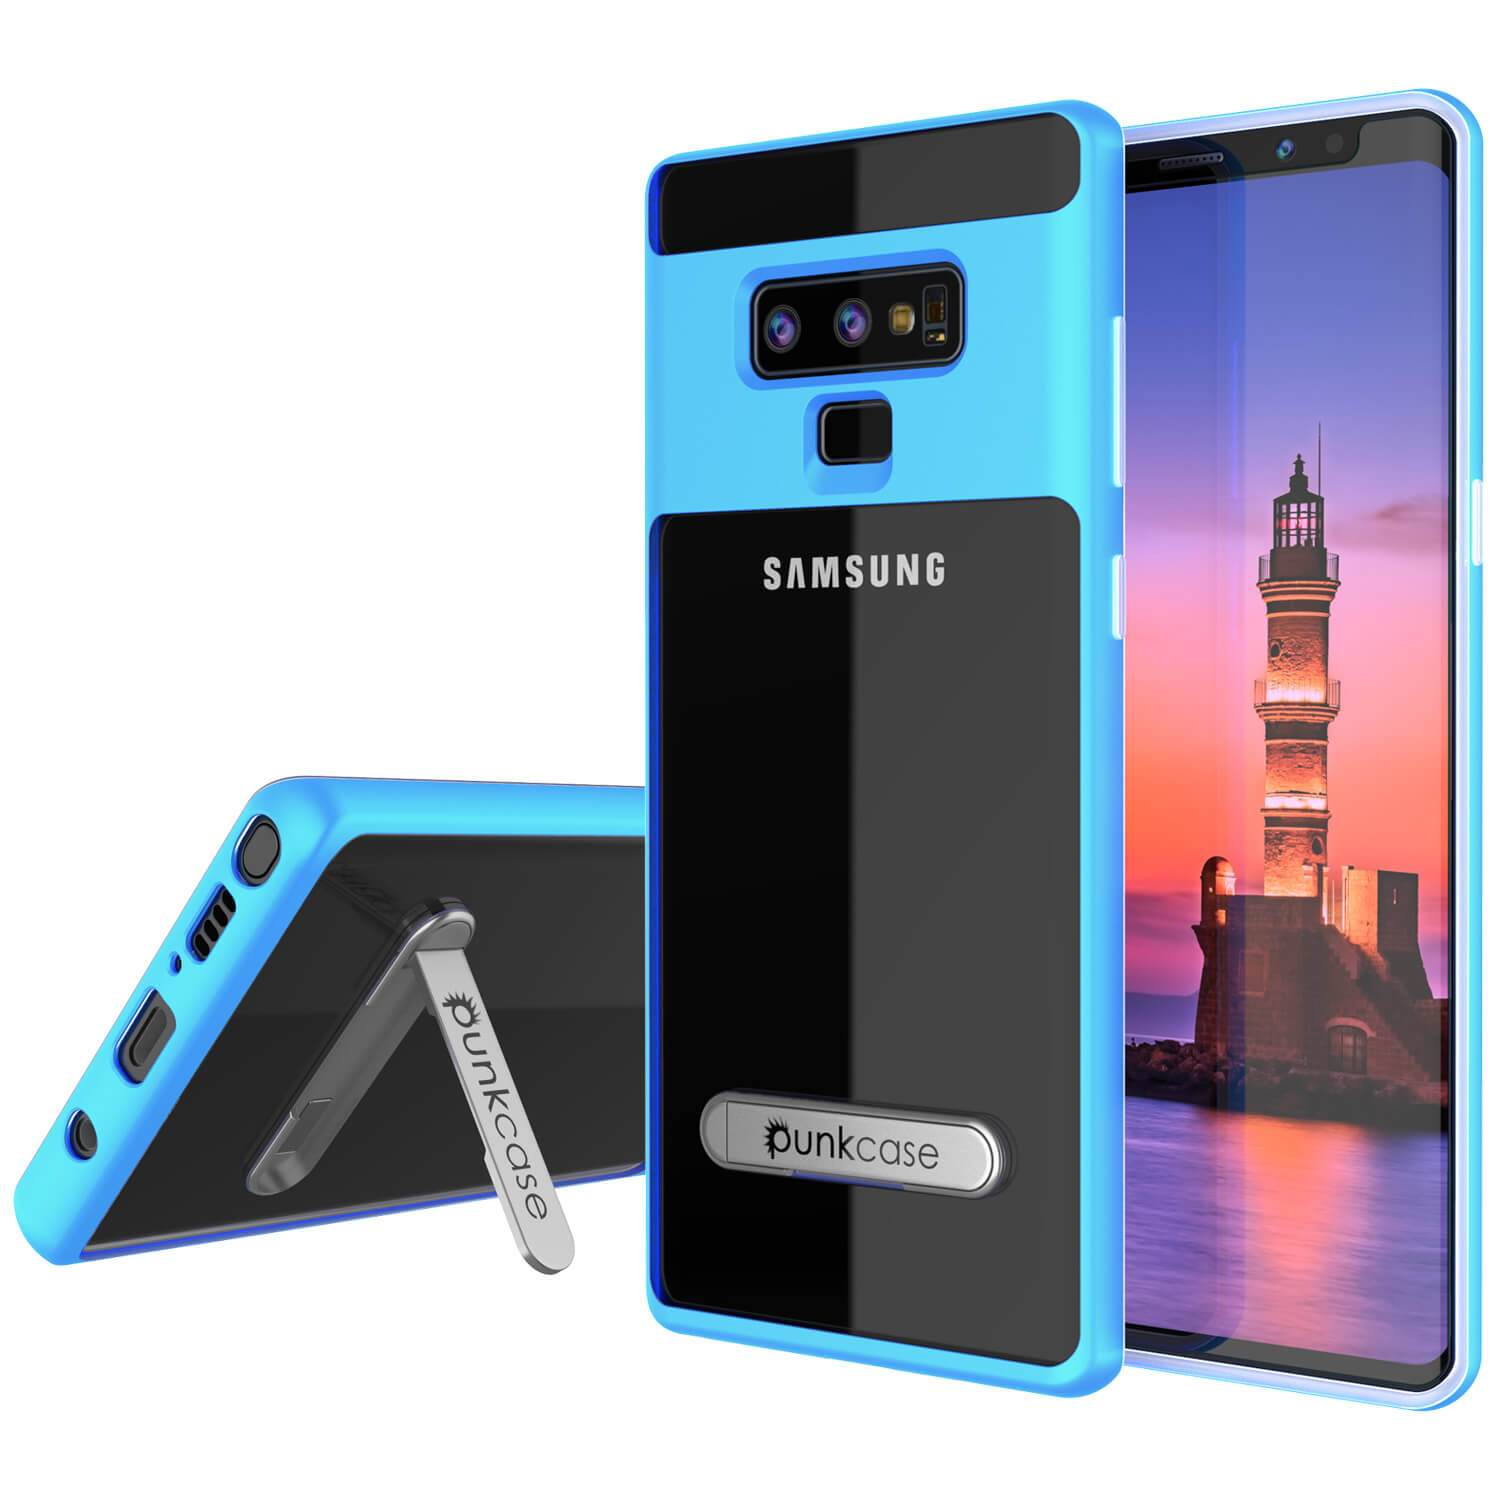 Galaxy Note 9 Lucid 3.0 PunkCase Armor Cover w/Integrated Kickstand and Screen Protector [Blue]